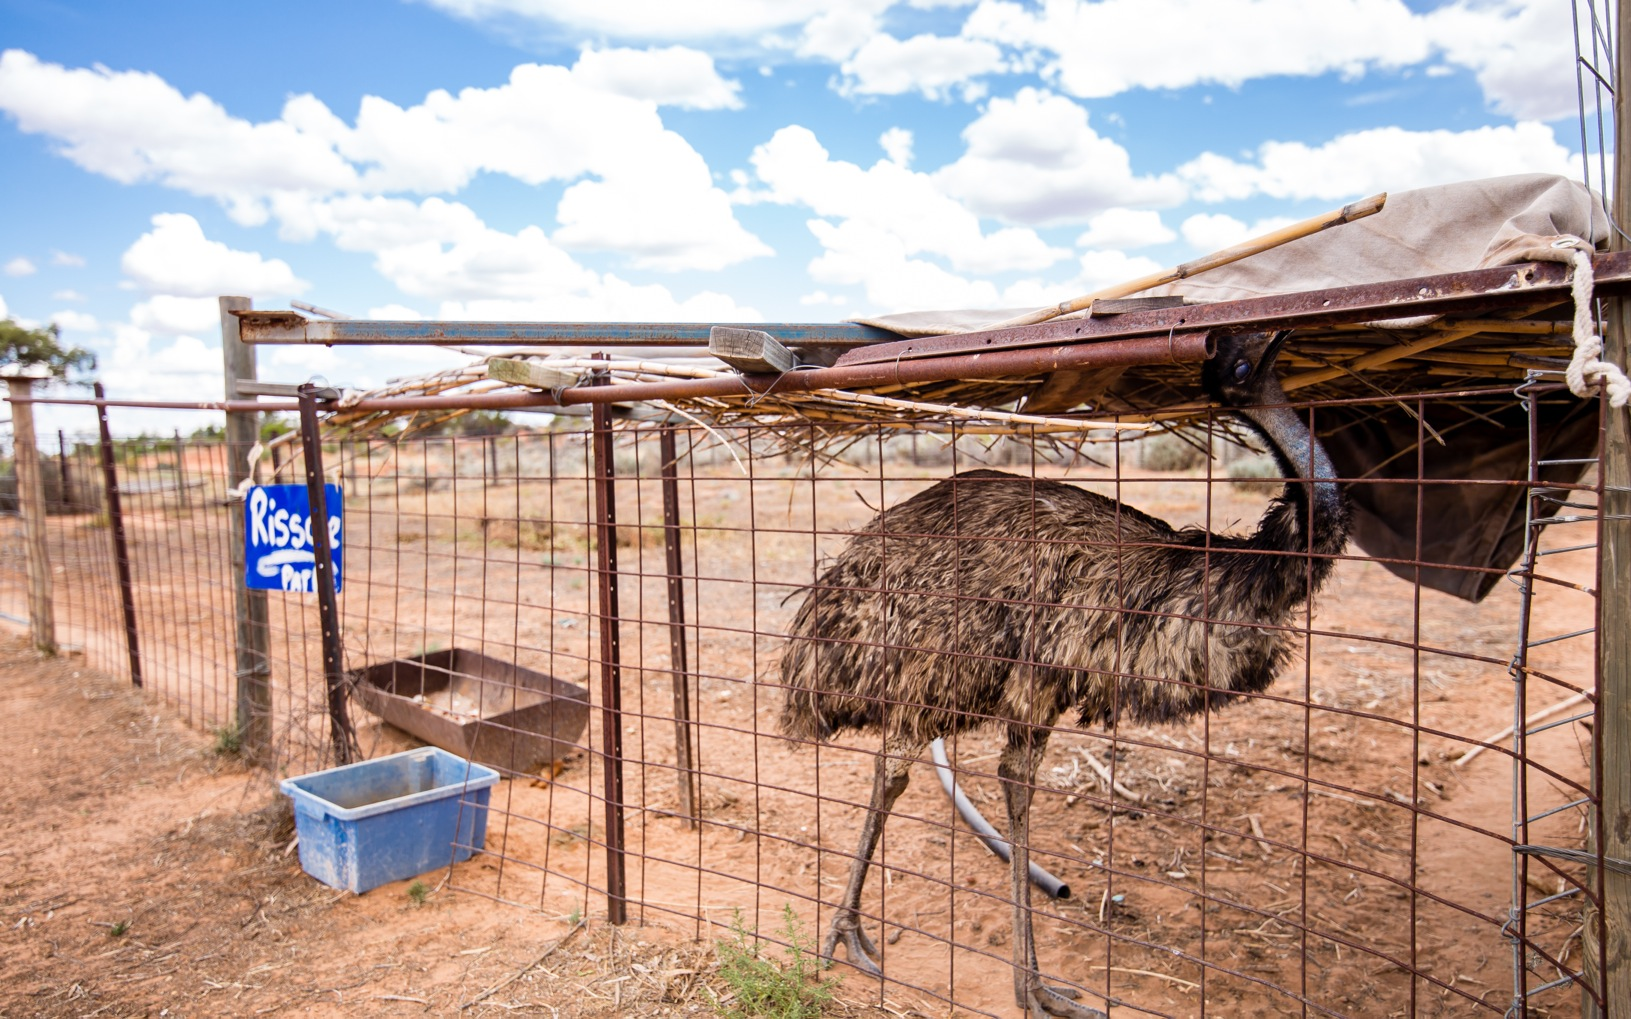 Campingplads i outbacken i Australien